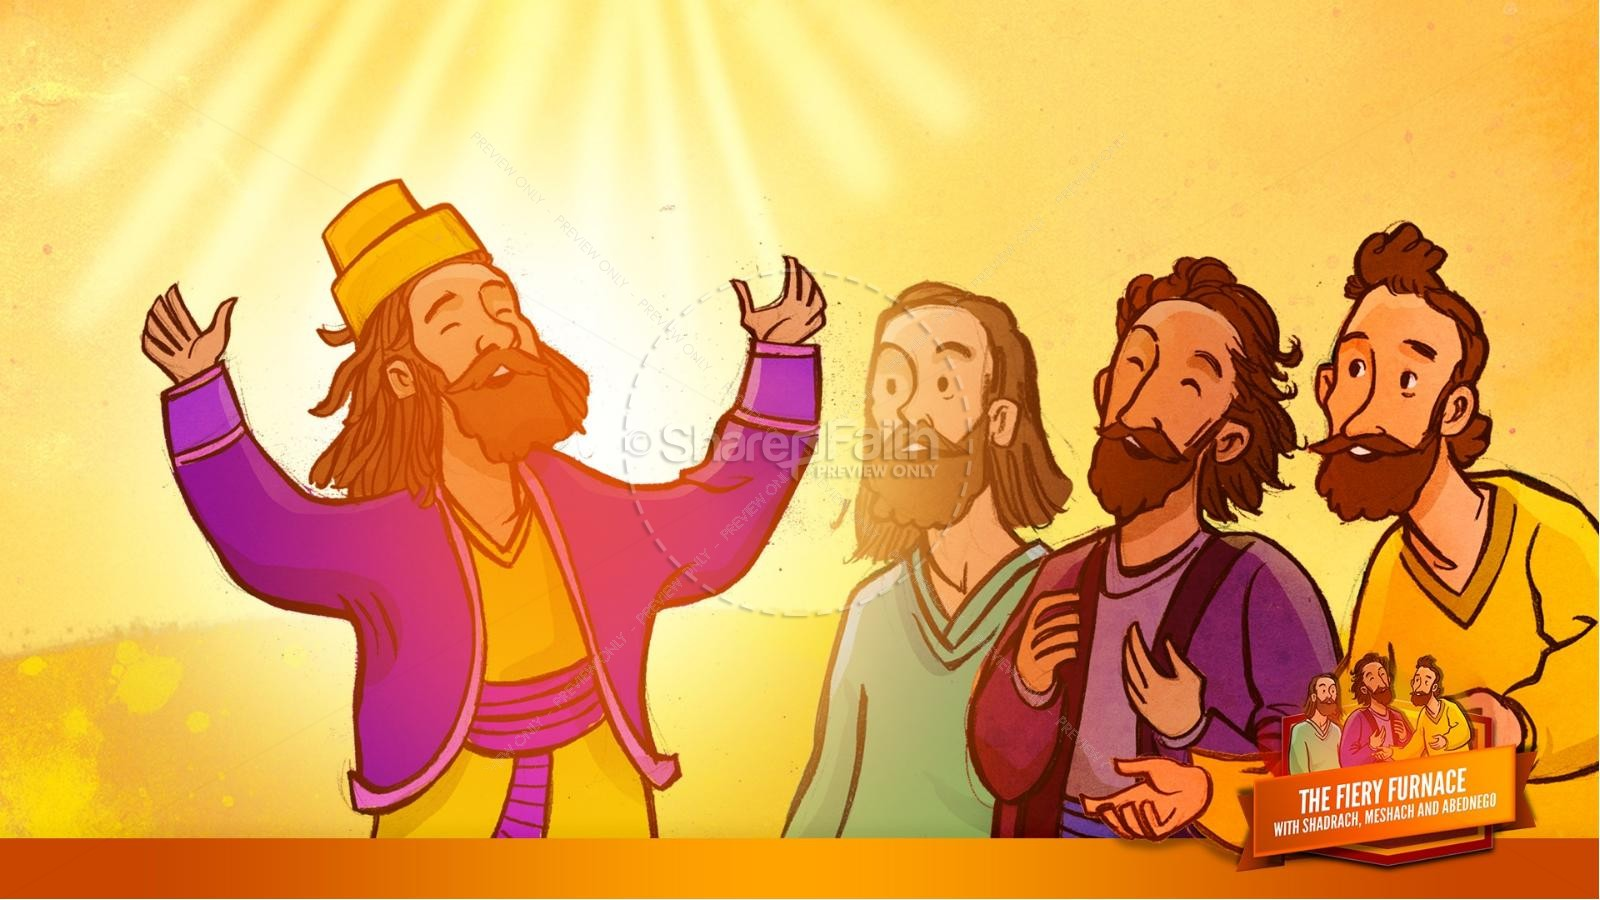 The Fiery Furnace with Shadrach, Meshach and Abednego Kids Bible Story   slide 59